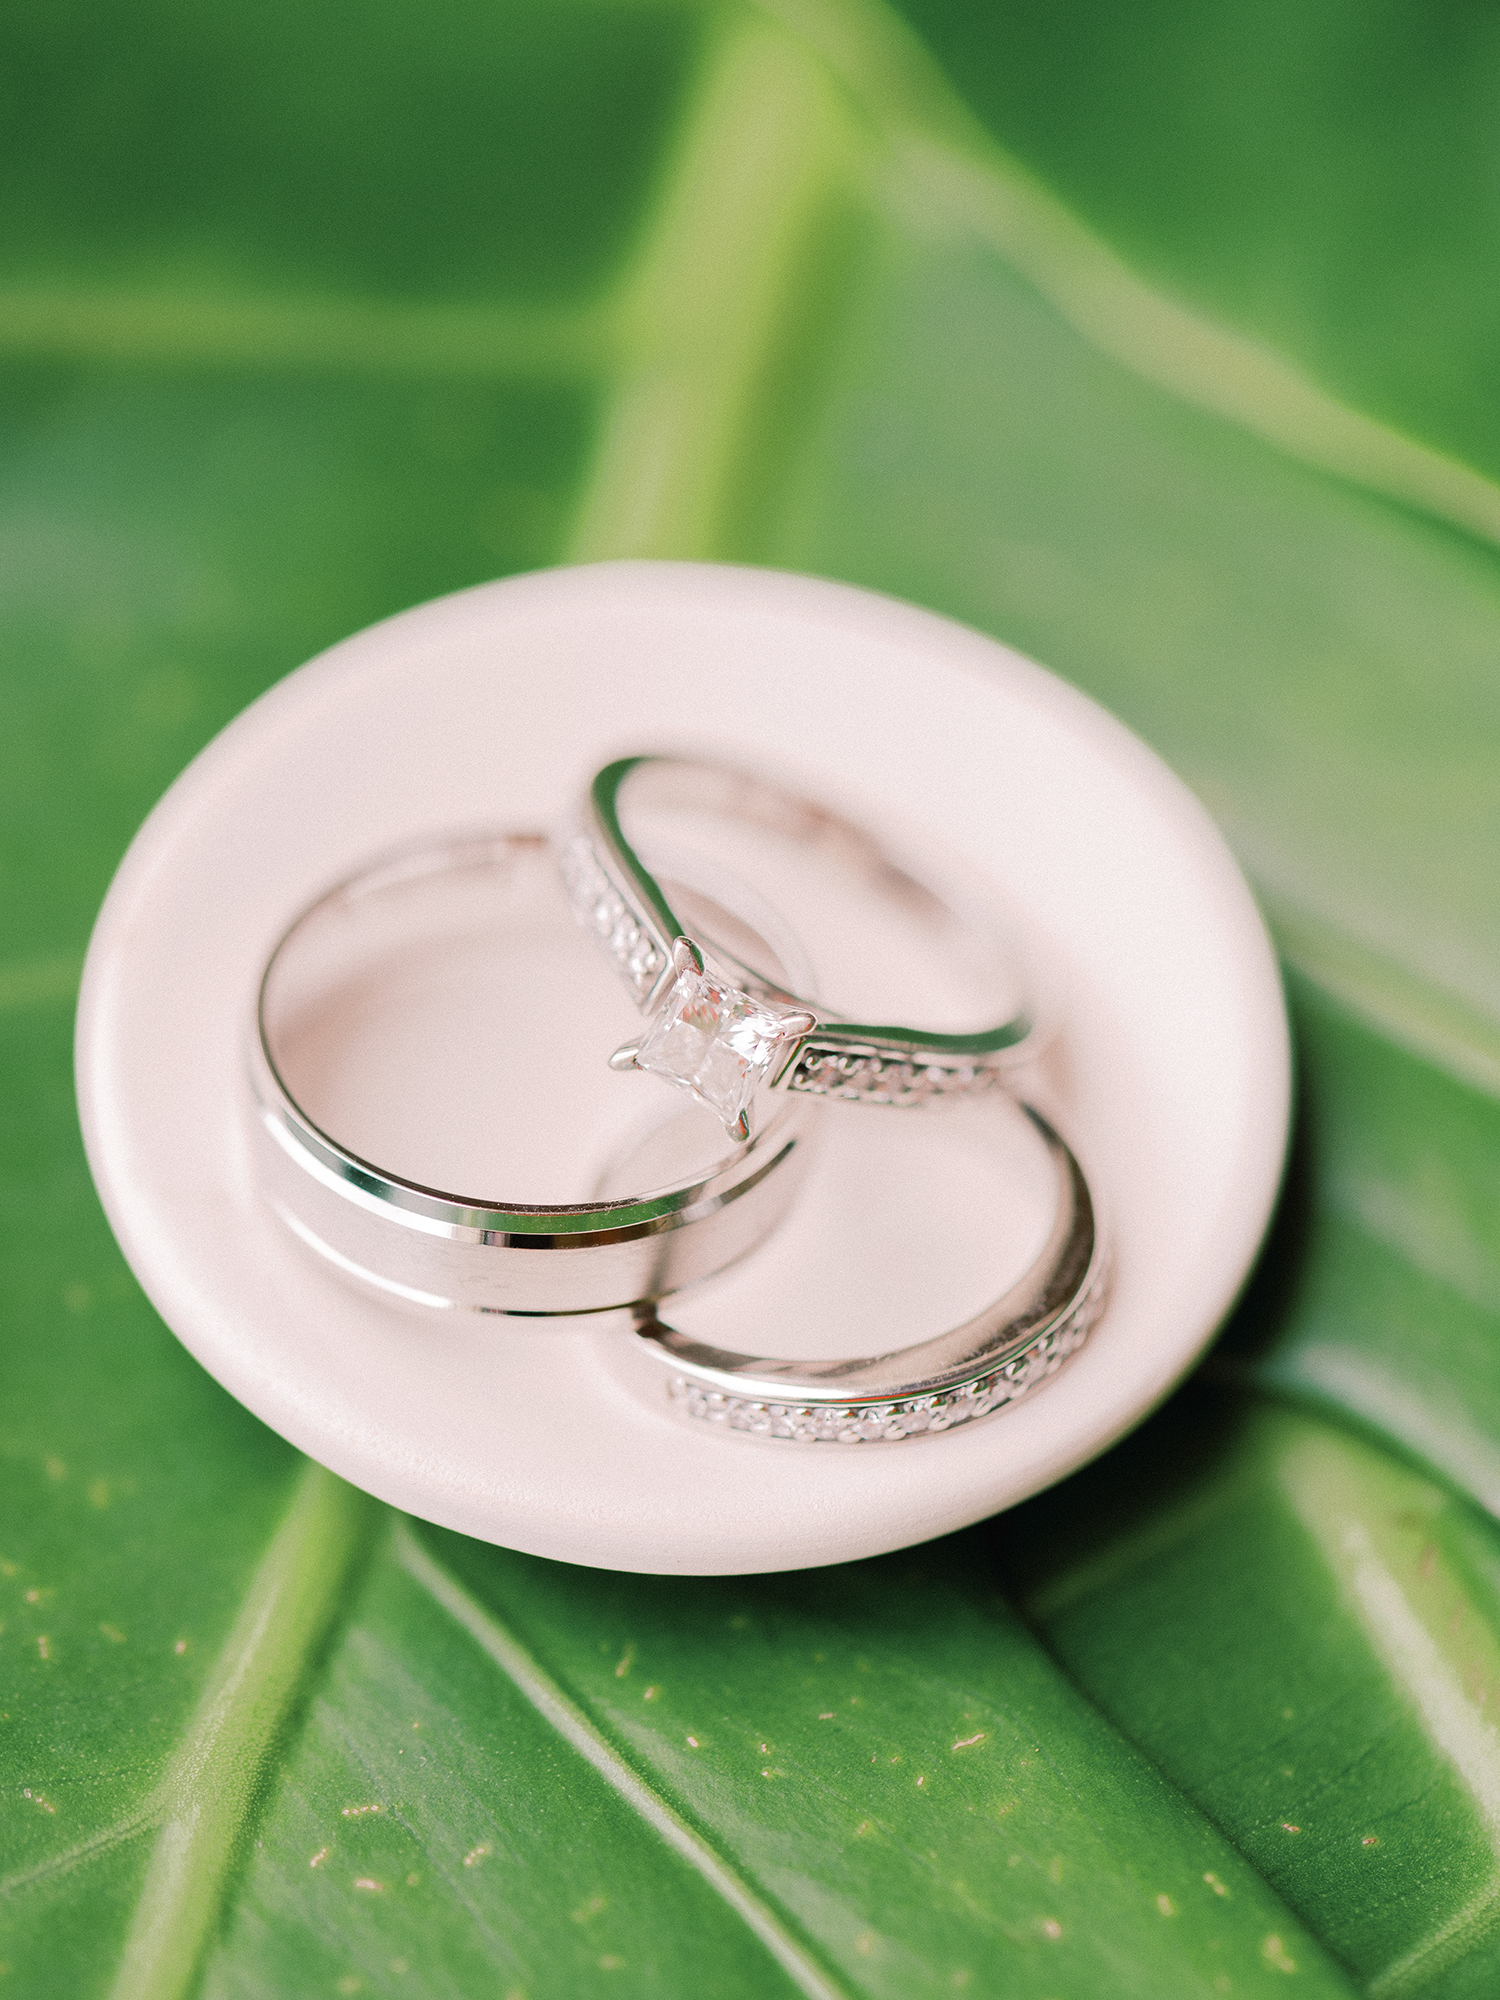 melissa leighton wedding rings on place and leaf